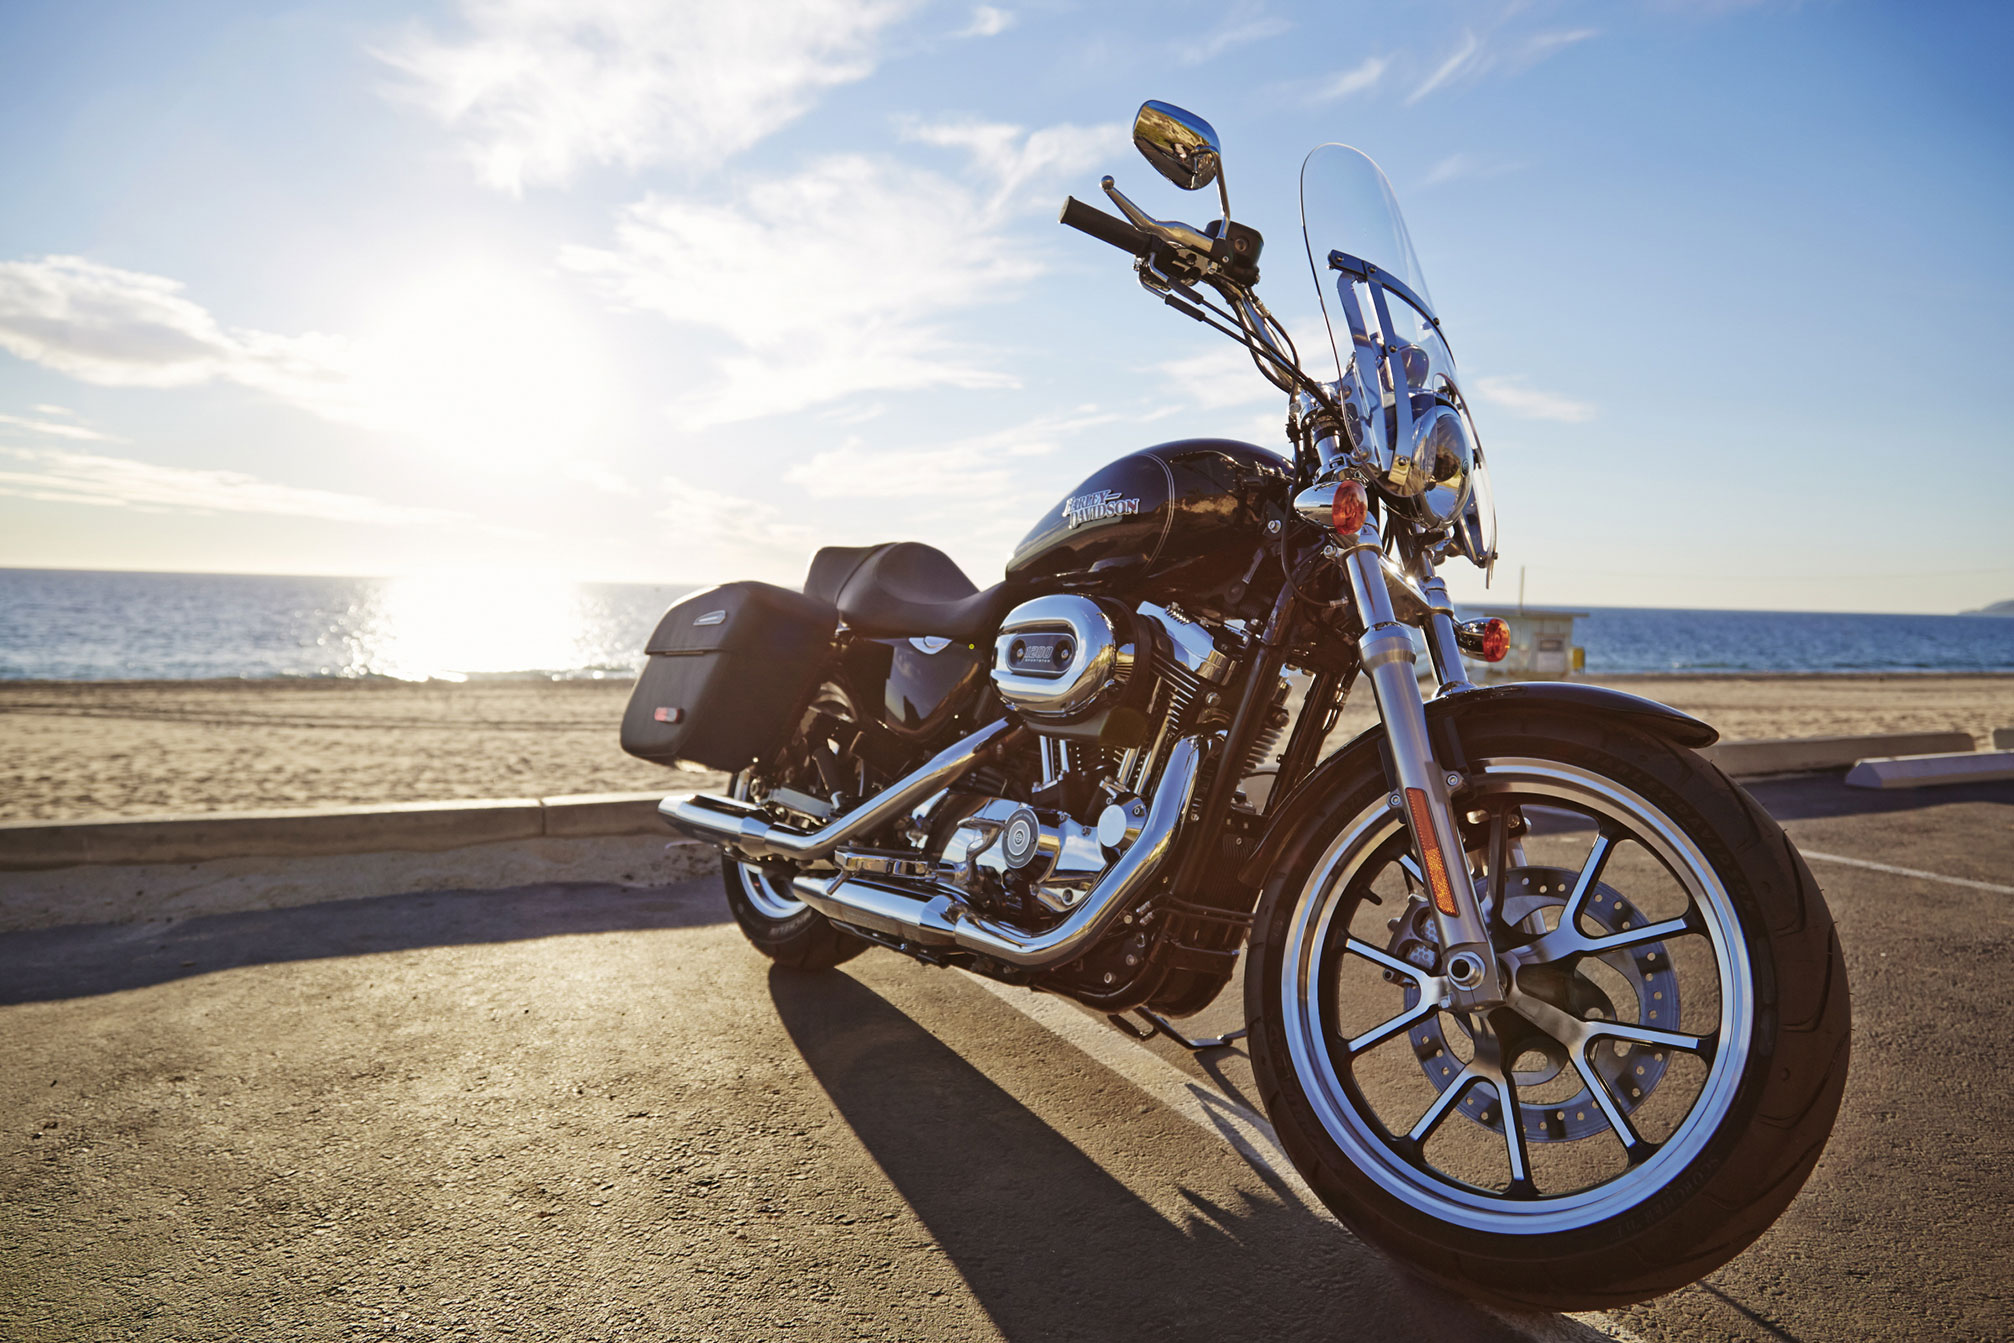 2014 Harley Davidson Xl1200t Superlow Review Touring Throttle By Wire Jumper Harness Heated Grip Wiring